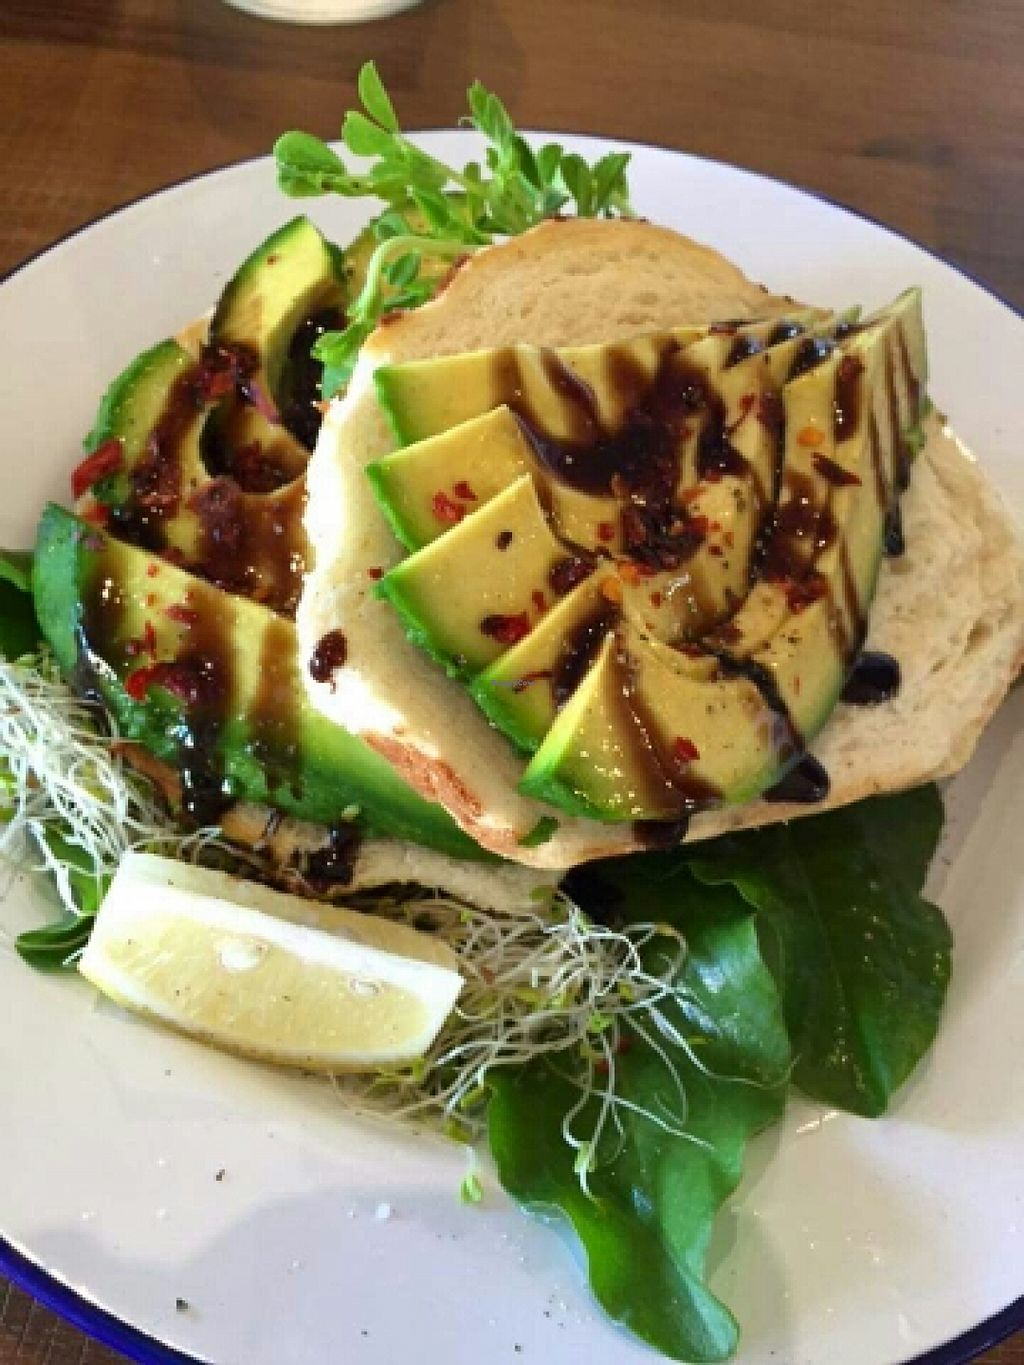 """Photo of Bonta Vera  by <a href=""""/members/profile/JohnTheVegan"""">JohnTheVegan</a> <br/>Avocado on Toast <br/> April 10, 2016  - <a href='/contact/abuse/image/69201/143849'>Report</a>"""